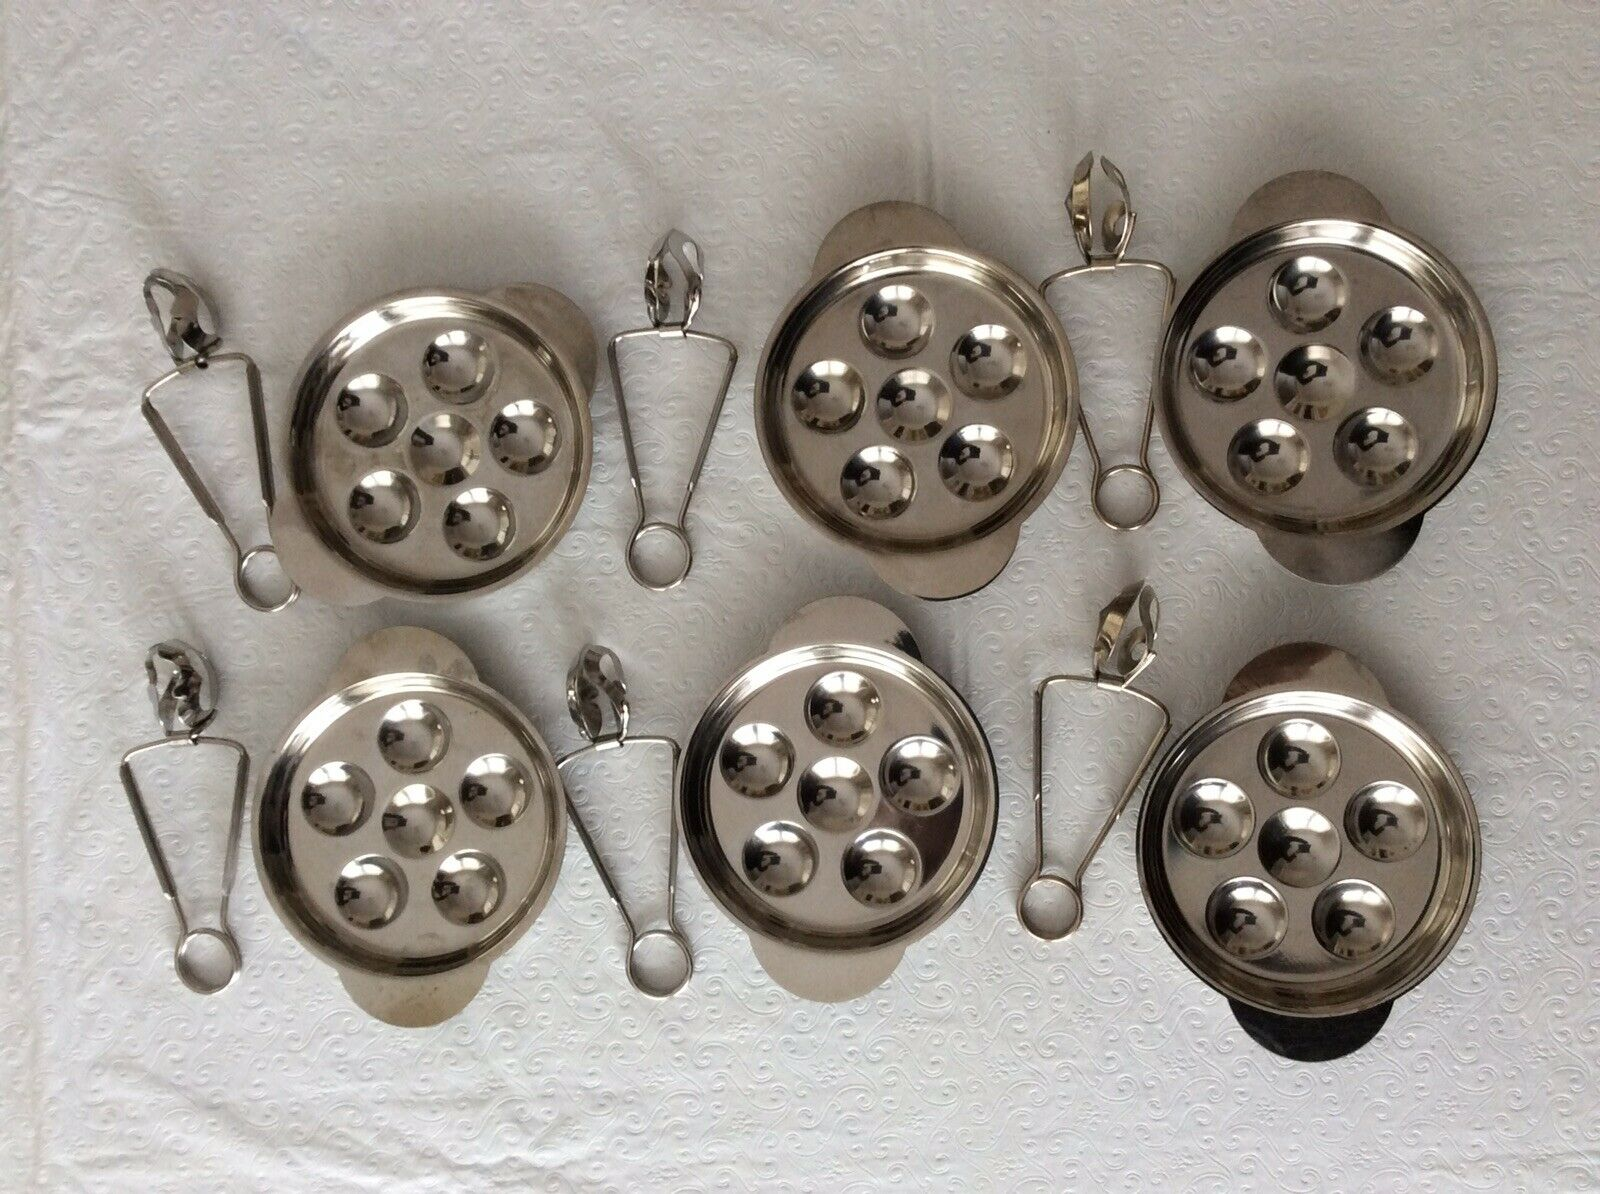 Escargot 6 Serving Sets  6 ASSIETTES & 6 pinces  Inox - 18% Inoxydable  France